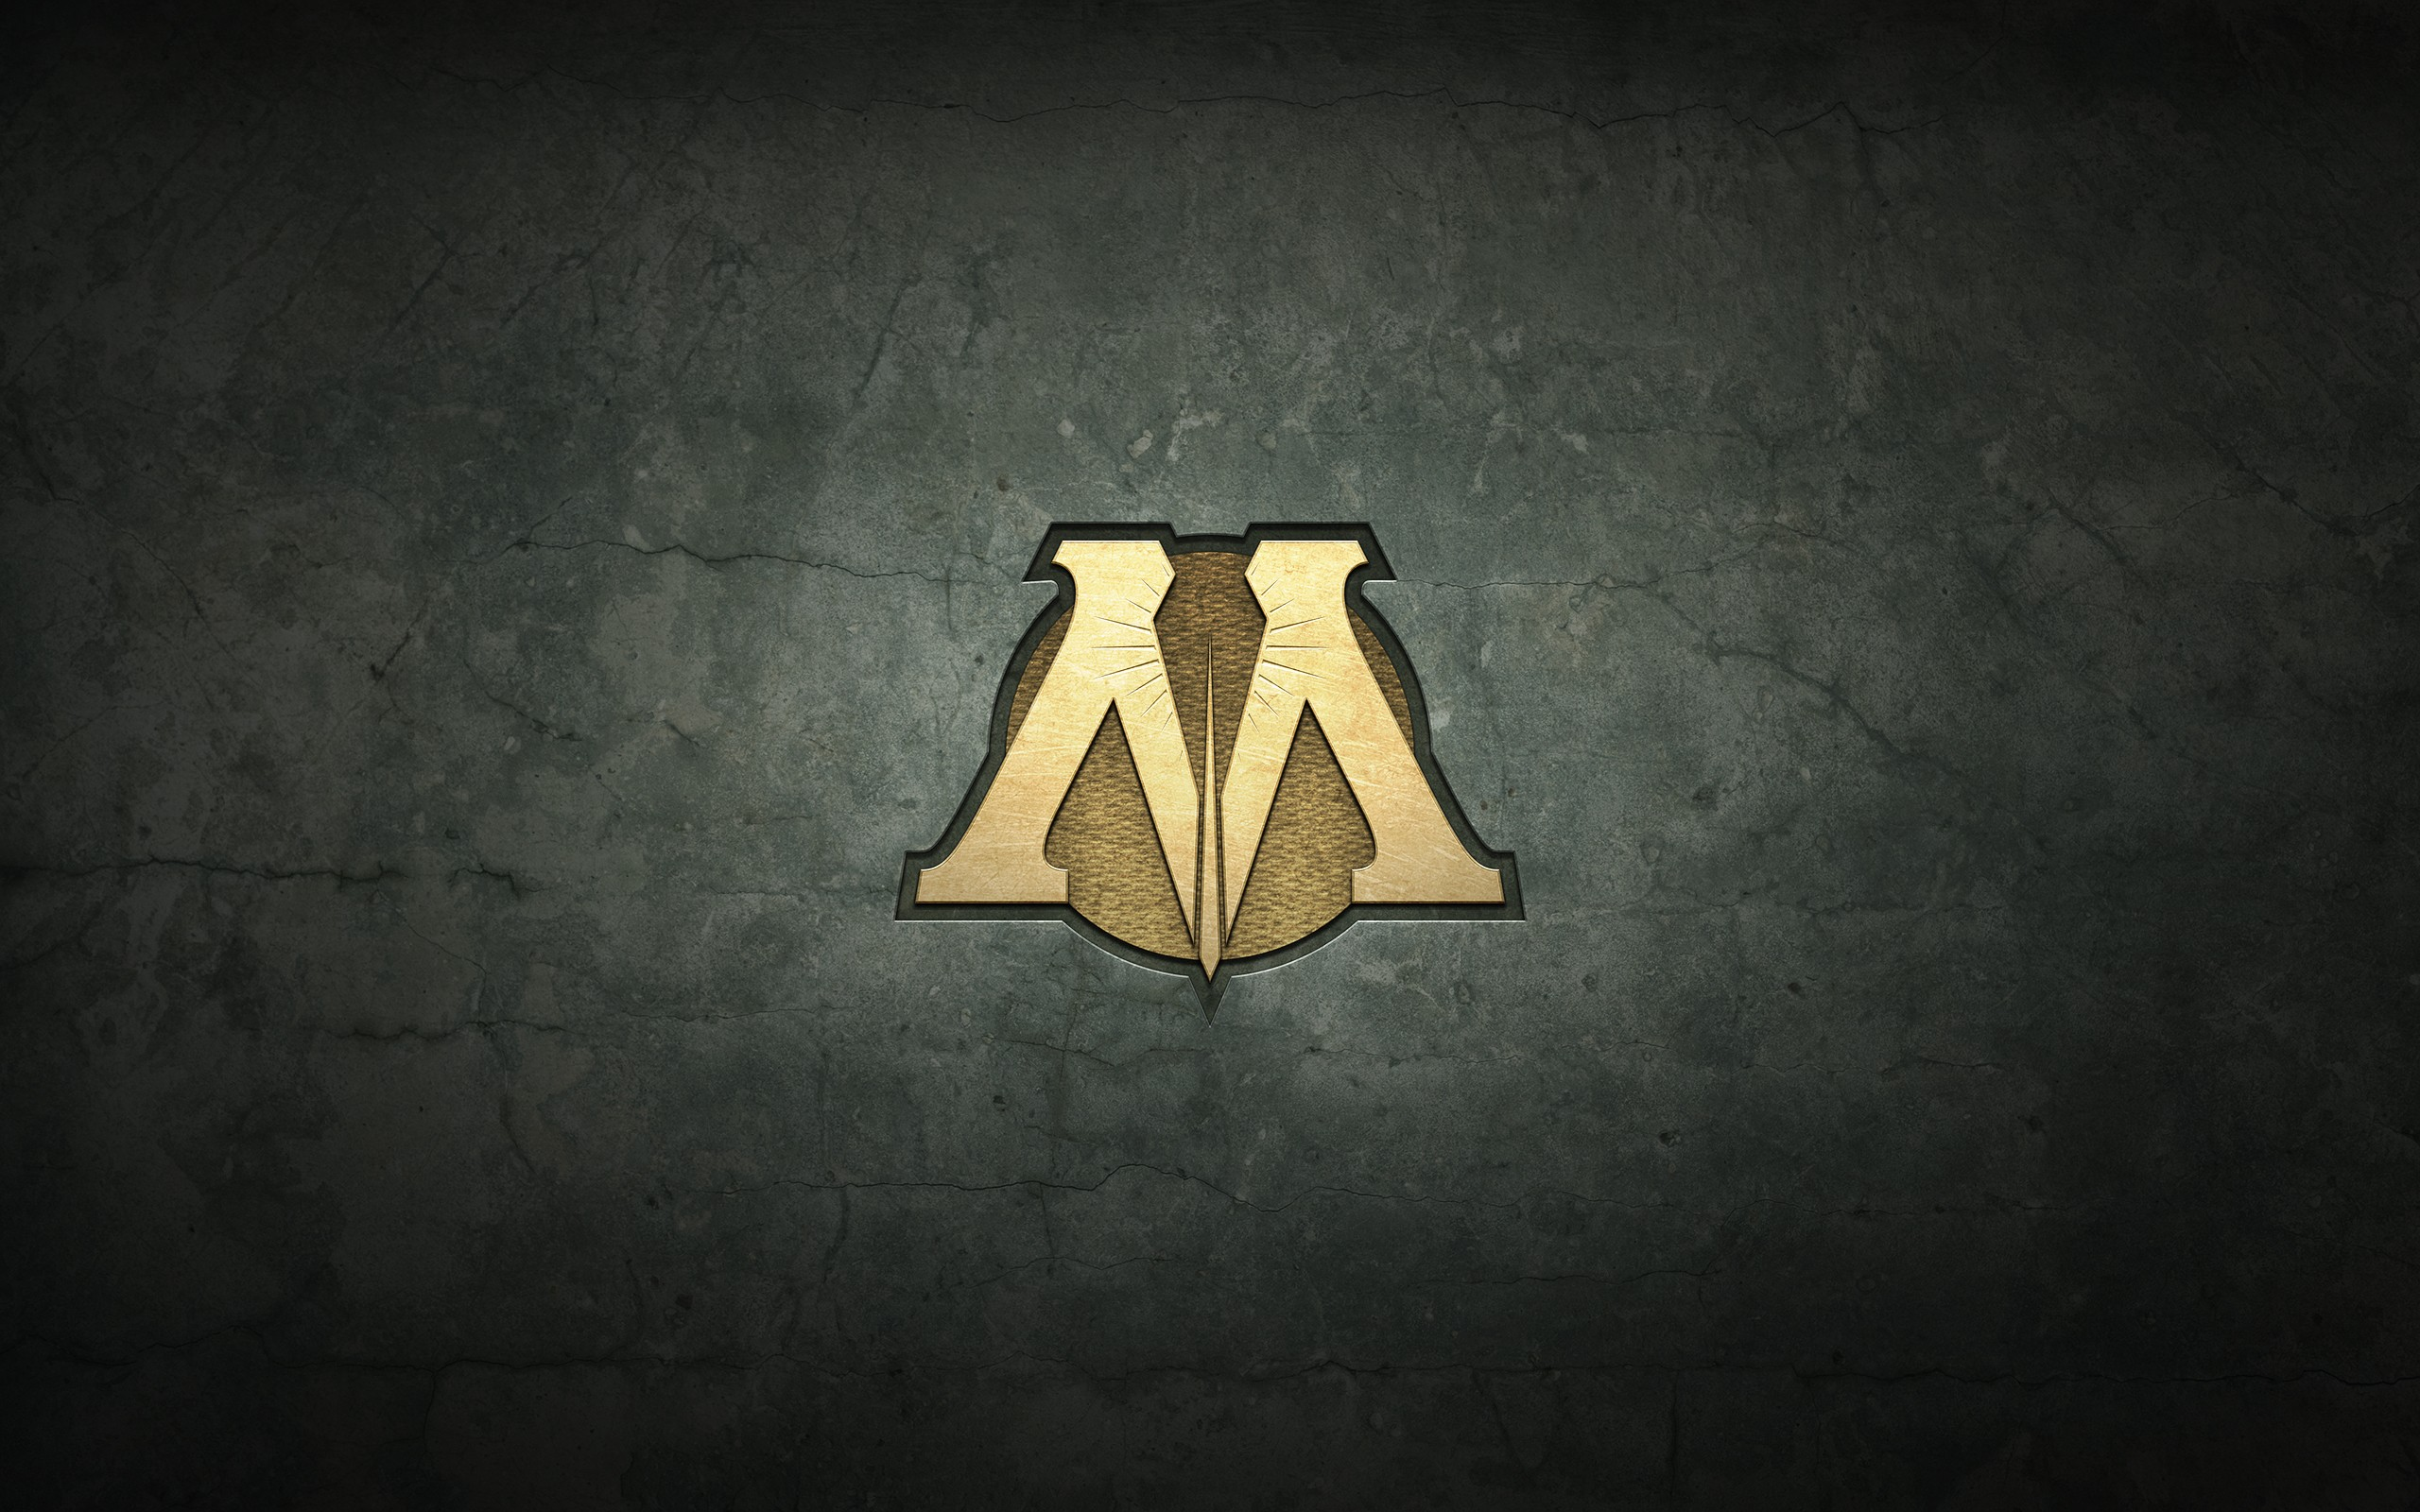 Harry Potter magic logos ministry wallpapers